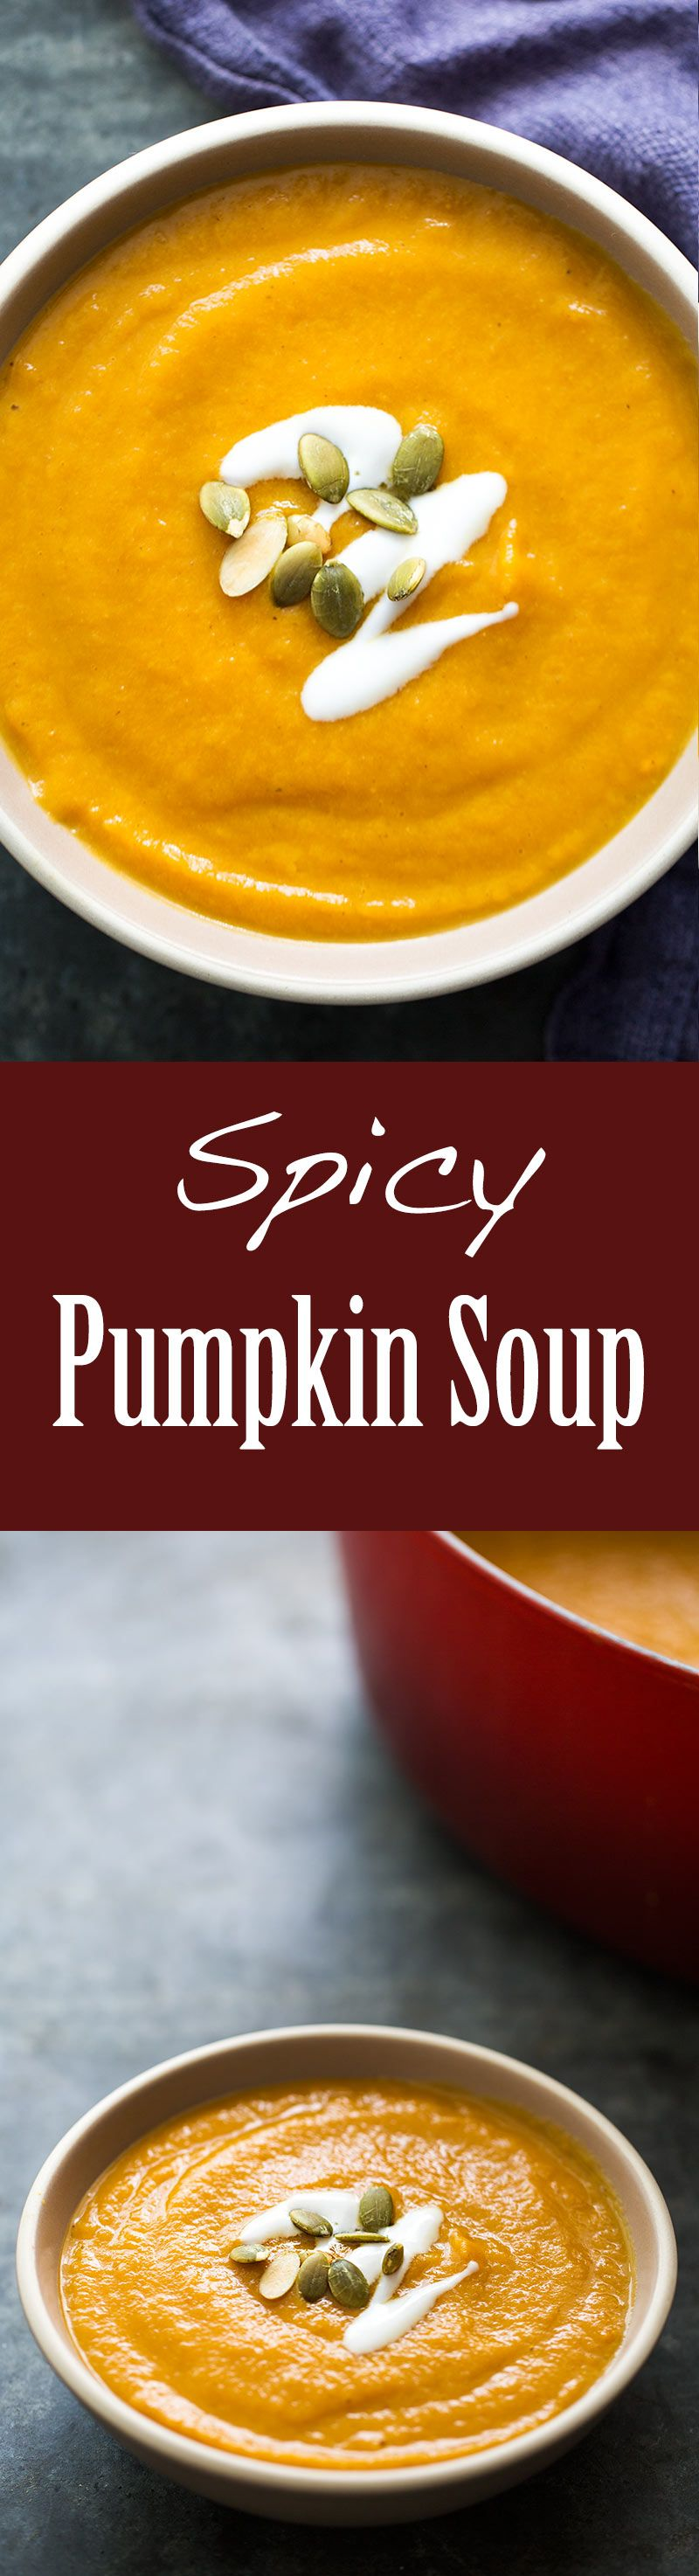 Pumpkin Soup ~ Quick and easy spicy pumpkin soup made with pumpkin ...